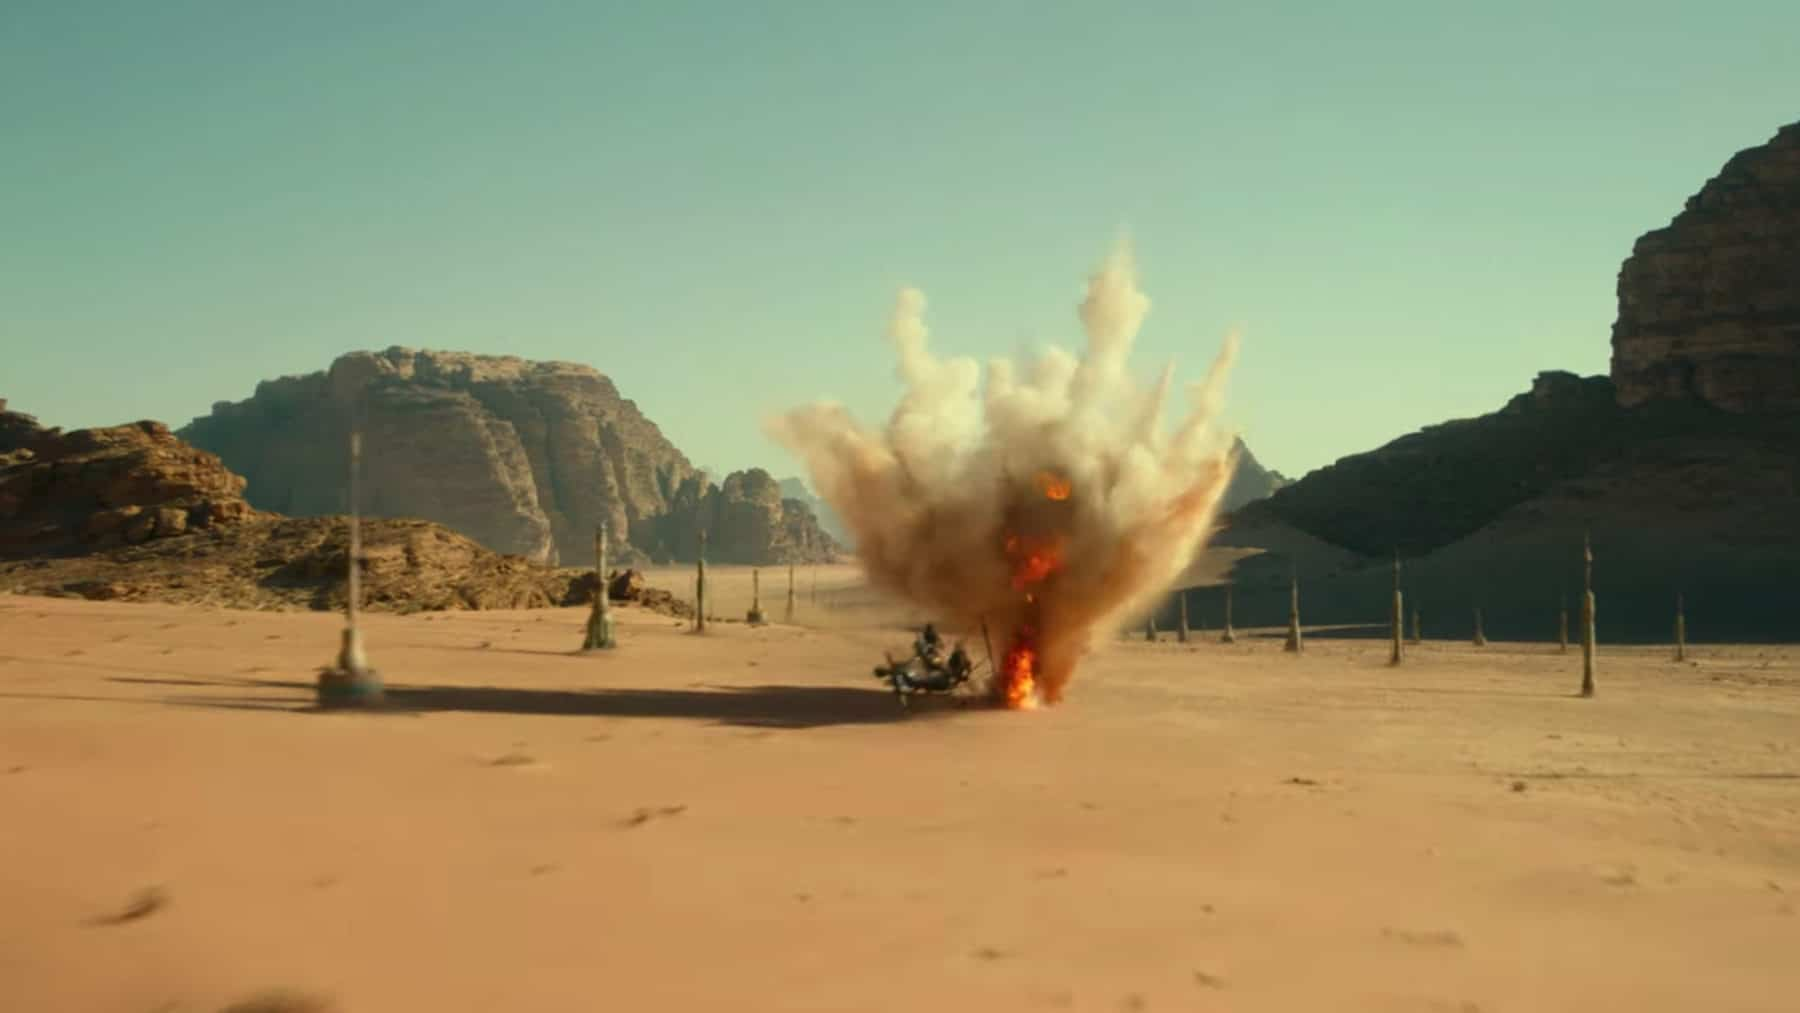 Star Wars Episode IX: Neuer Desert Skiff?